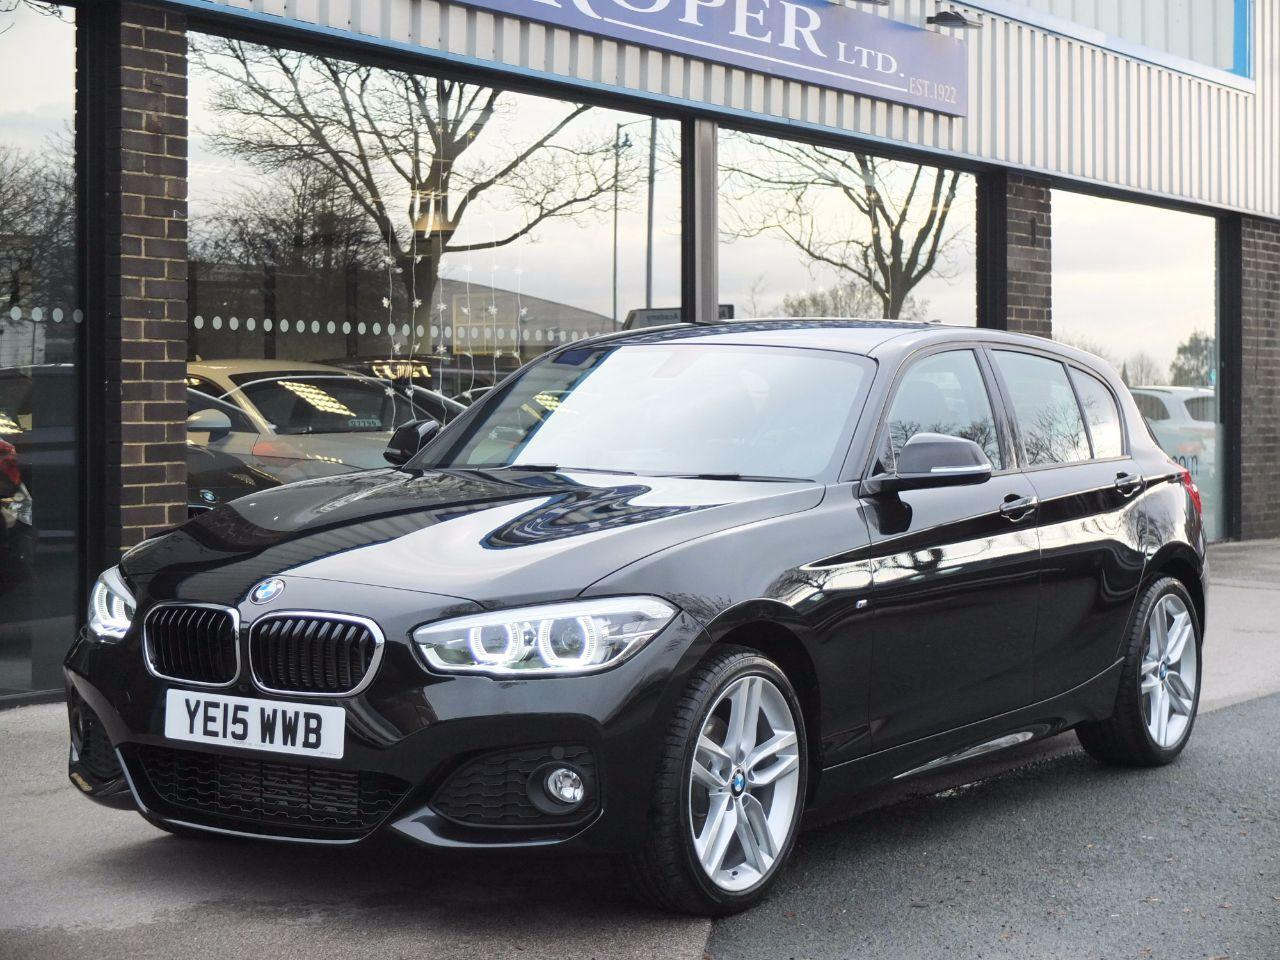 BMW 1 Series 2.0 120d xDrive M Sport Auto New Model (Navigation) Hatchback Diesel Black Sapphire MetallicBMW 1 Series 2.0 120d xDrive M Sport Auto New Model (Navigation) Hatchback Diesel Black Sapphire Metallic at fa Roper Ltd Bradford